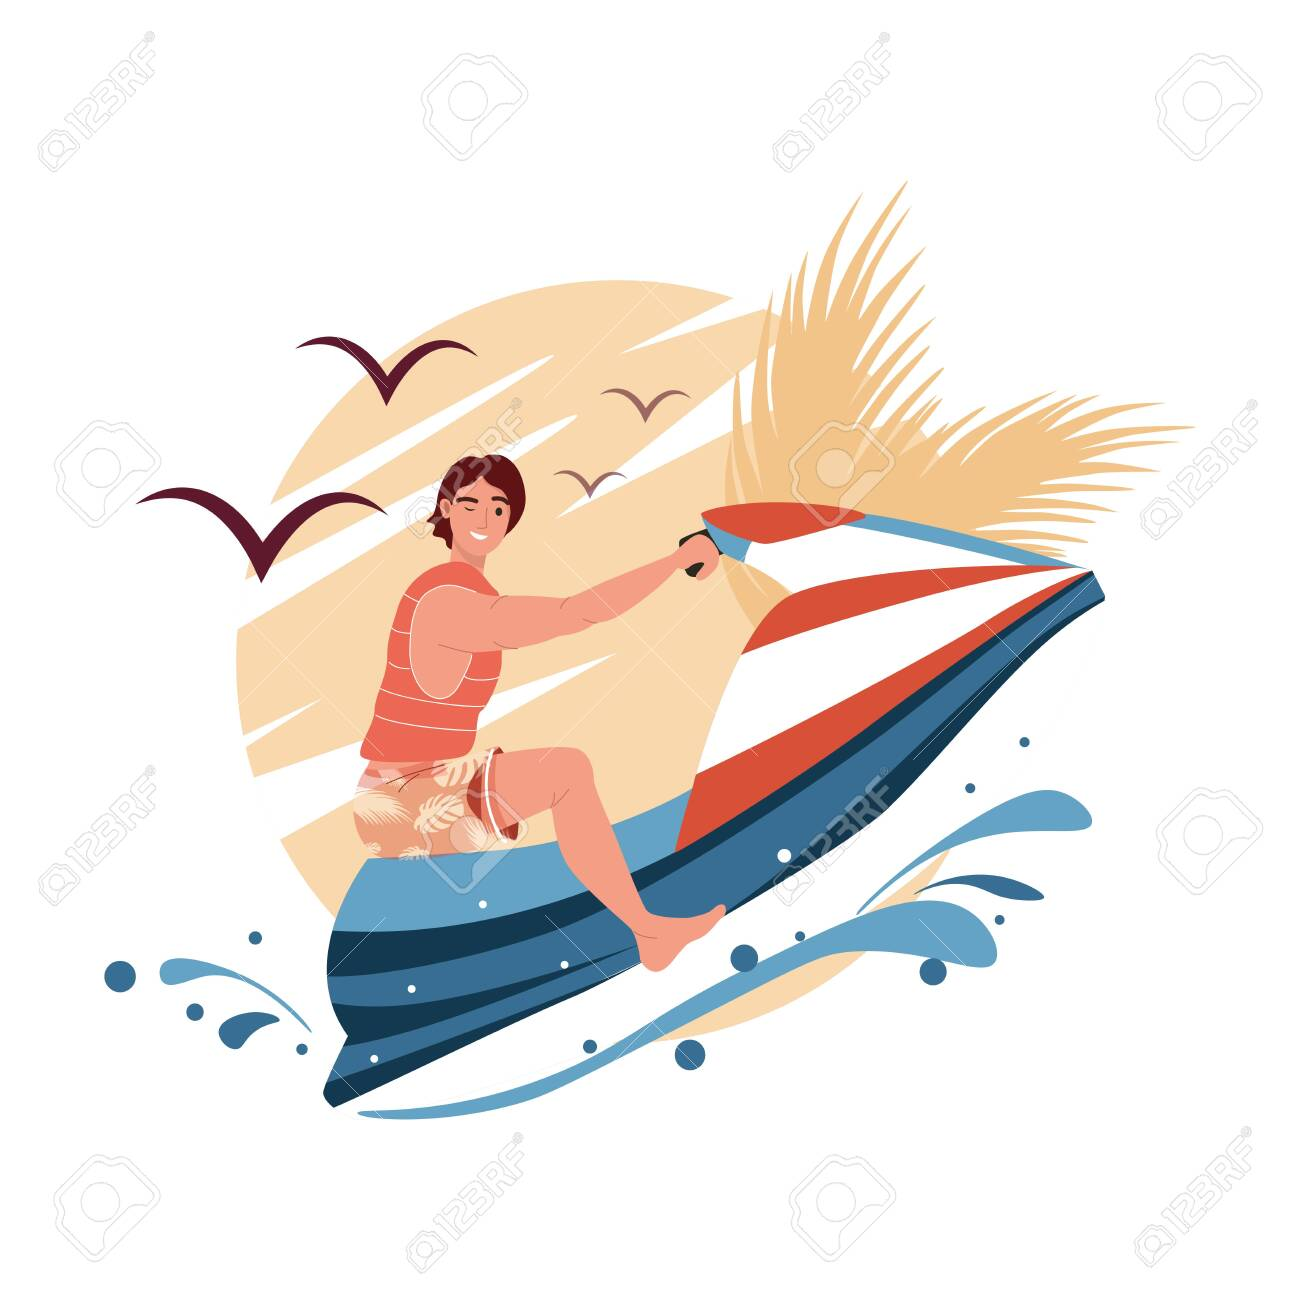 Young man ride hydro cycle in sea vector. Jetski landscape cover design. Summer holiday on water scooter ocean waves cartoon illustration. Character racing water scooter vector - 153582216